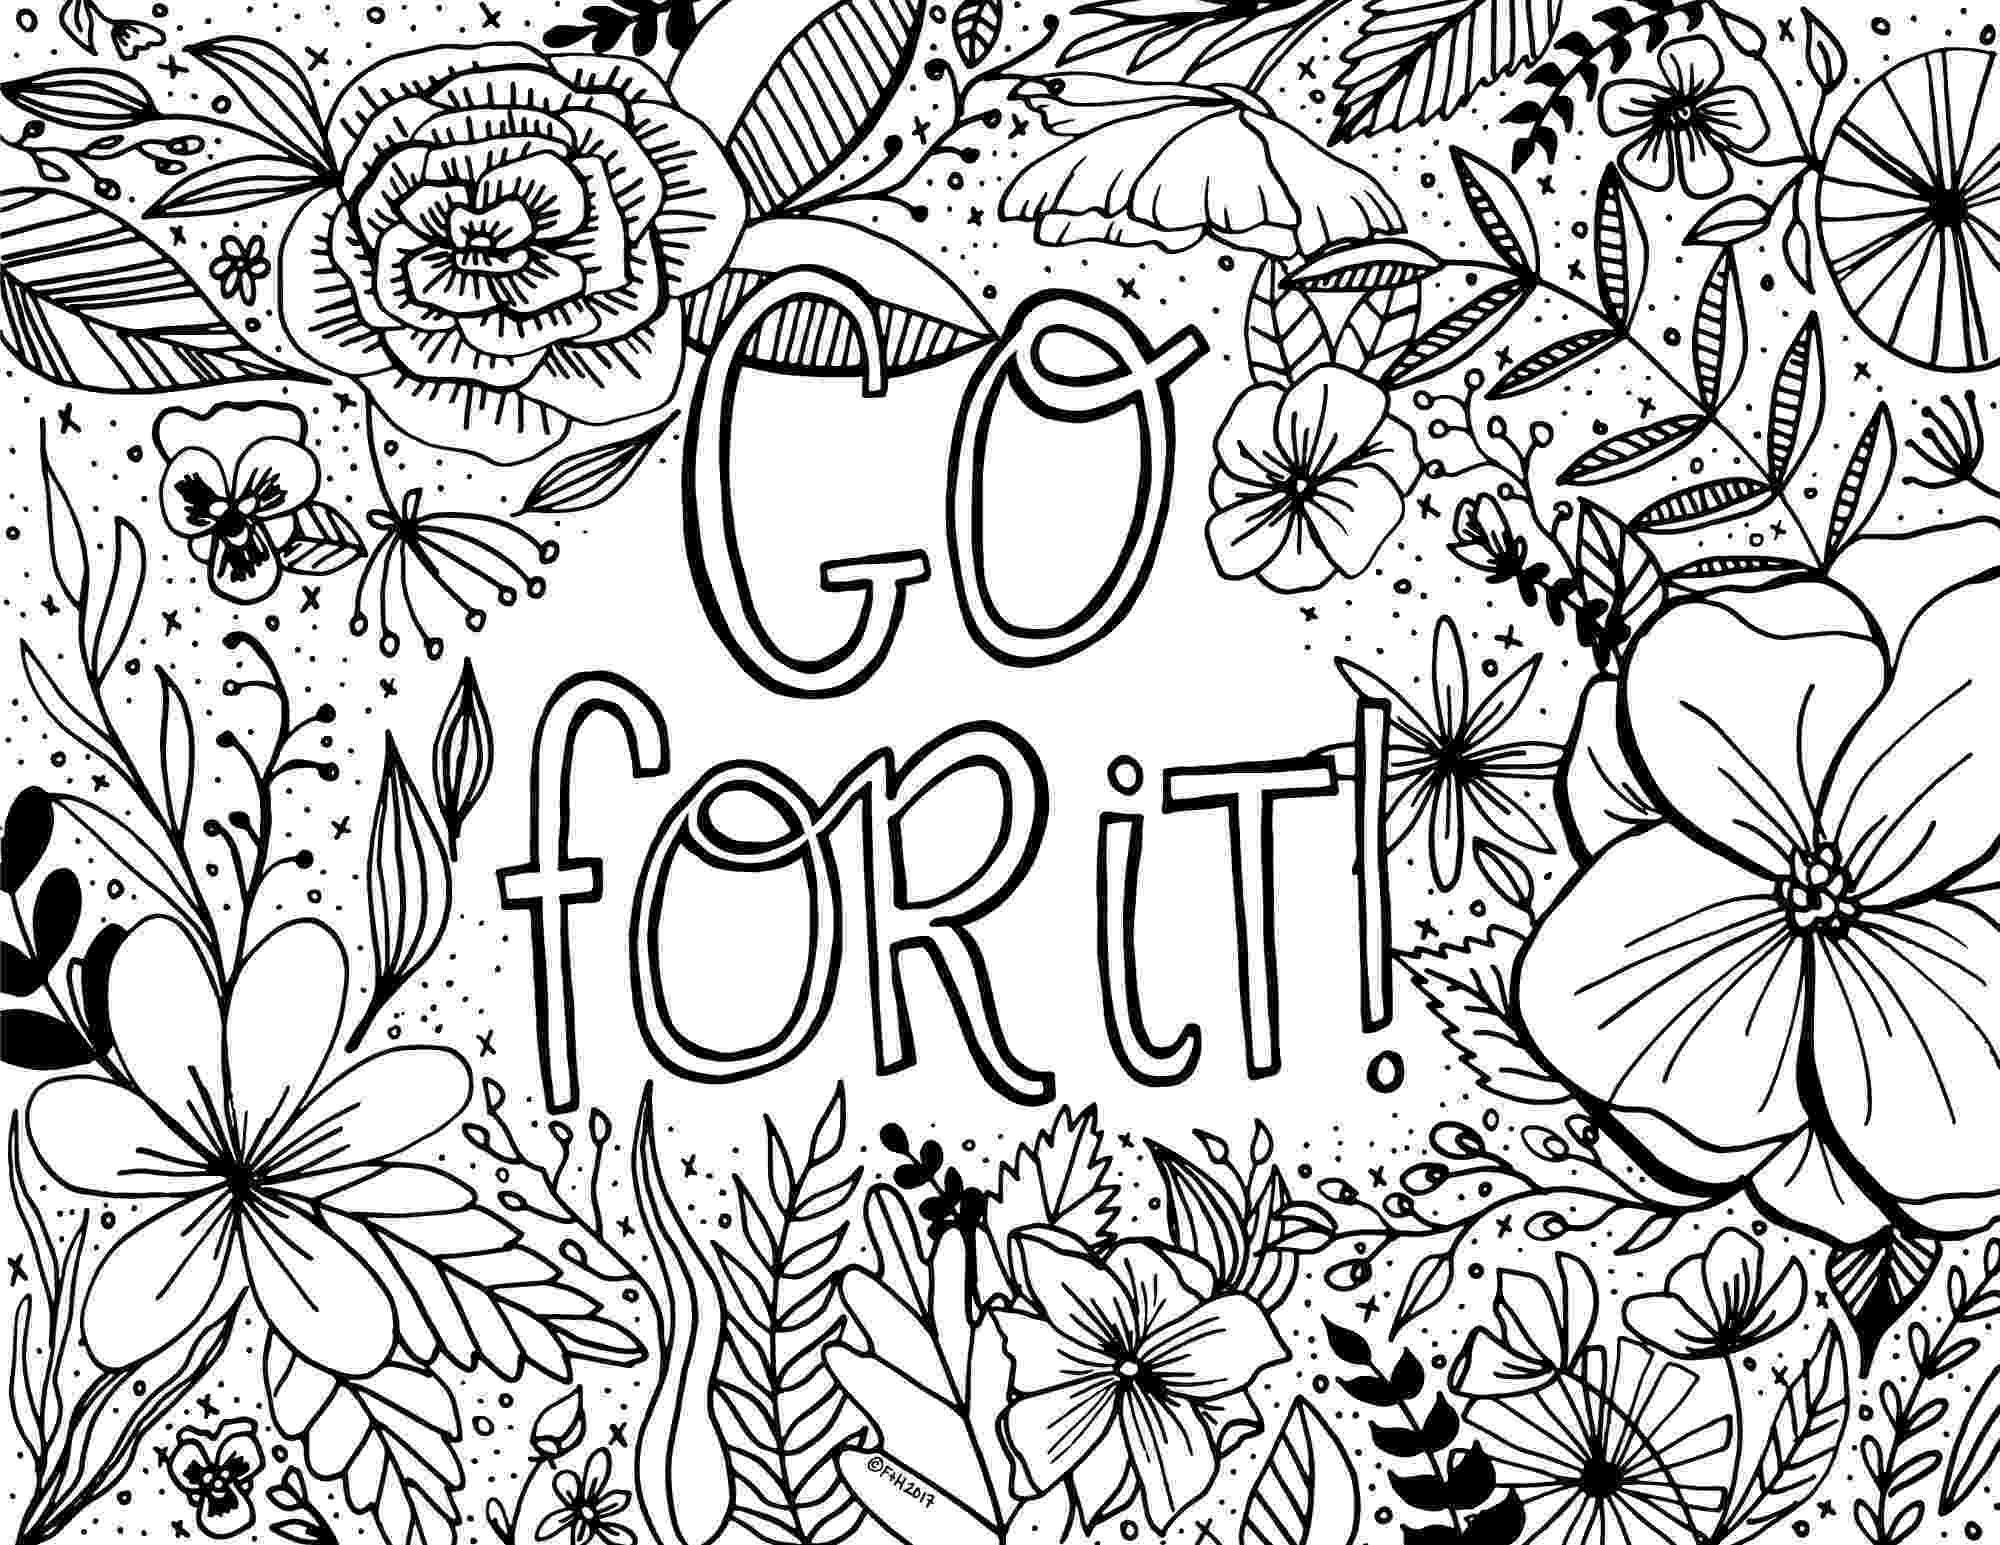 flowers you can print and color printable coloring pages at getdrawings free download and print flowers color can you